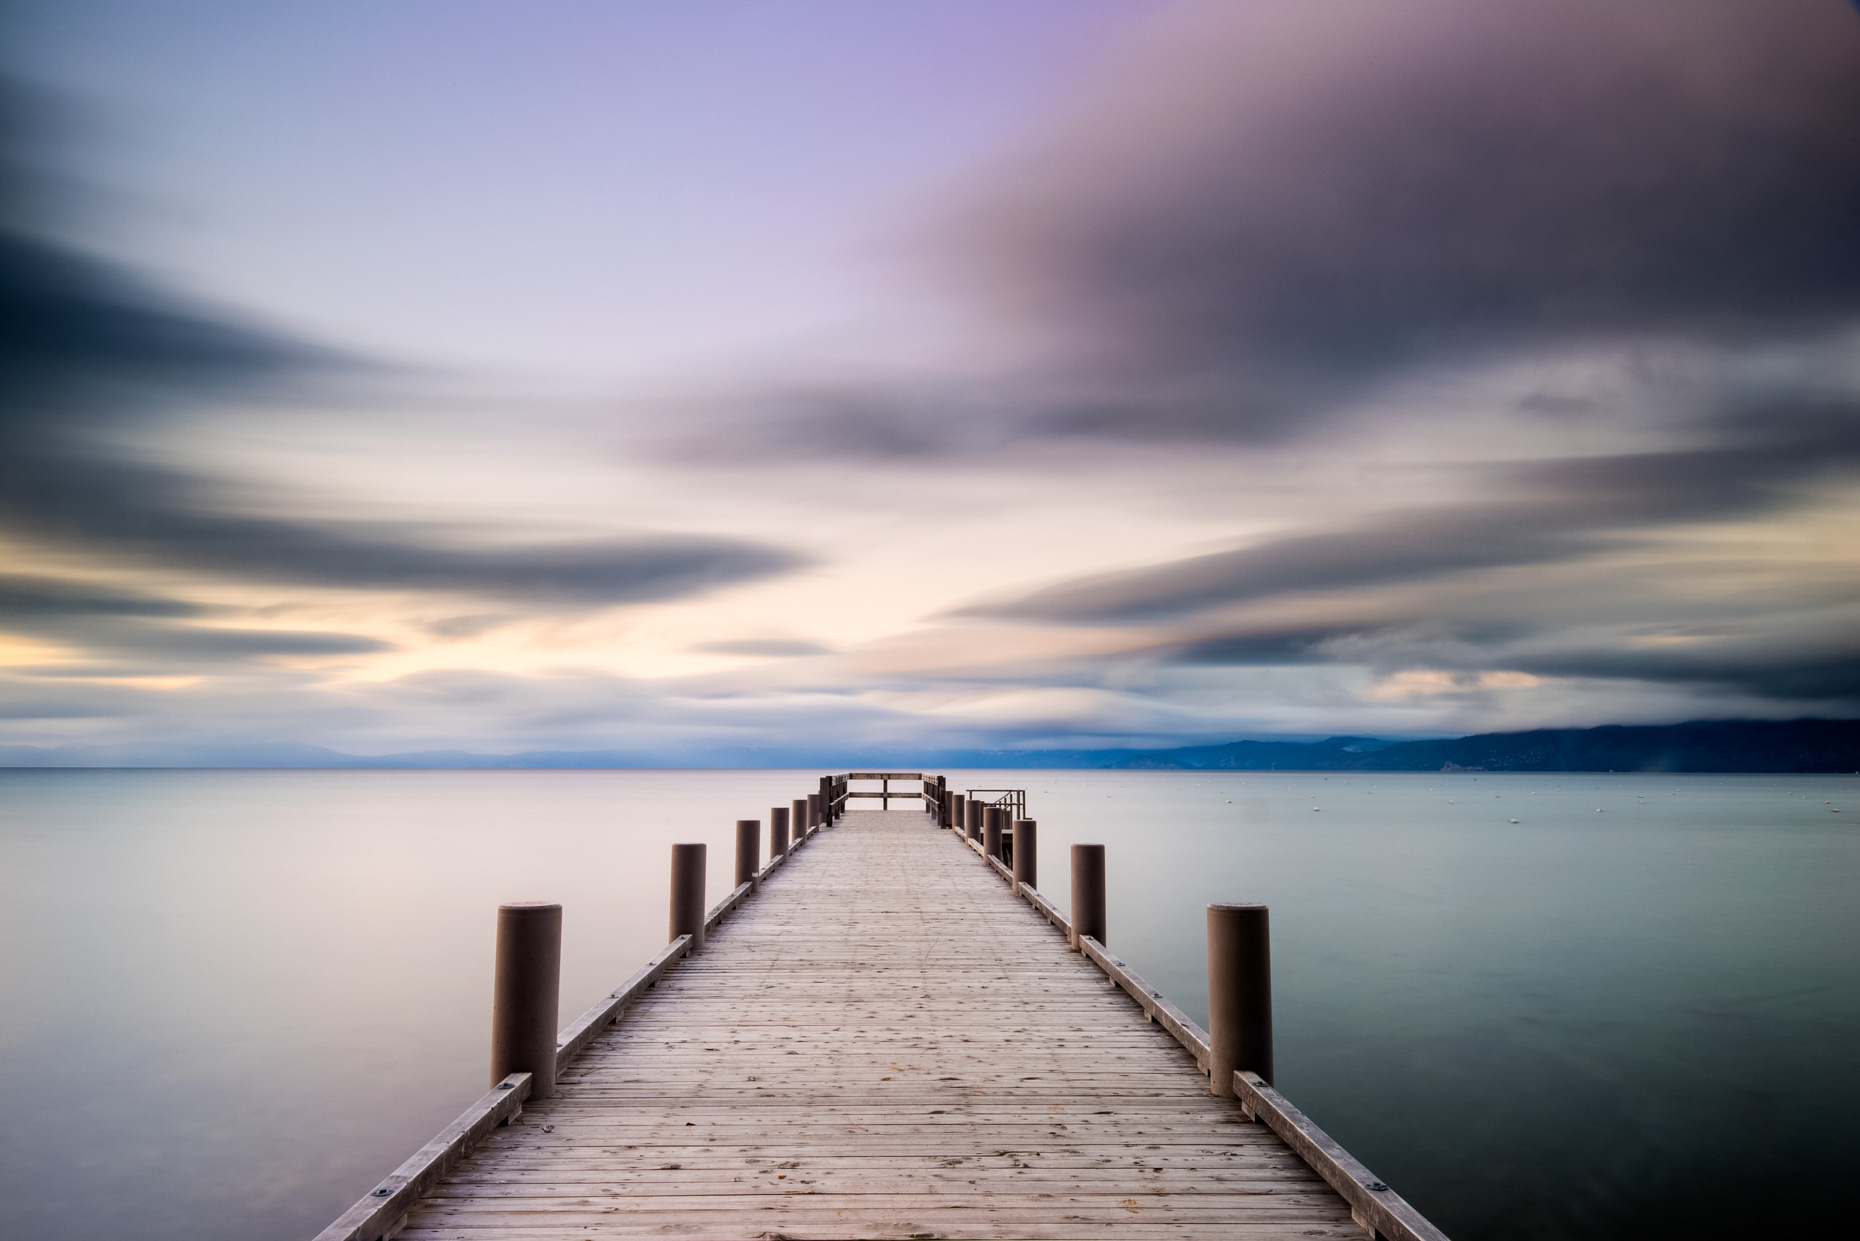 Evening Light Over A Pier In Lake Tahoe, California